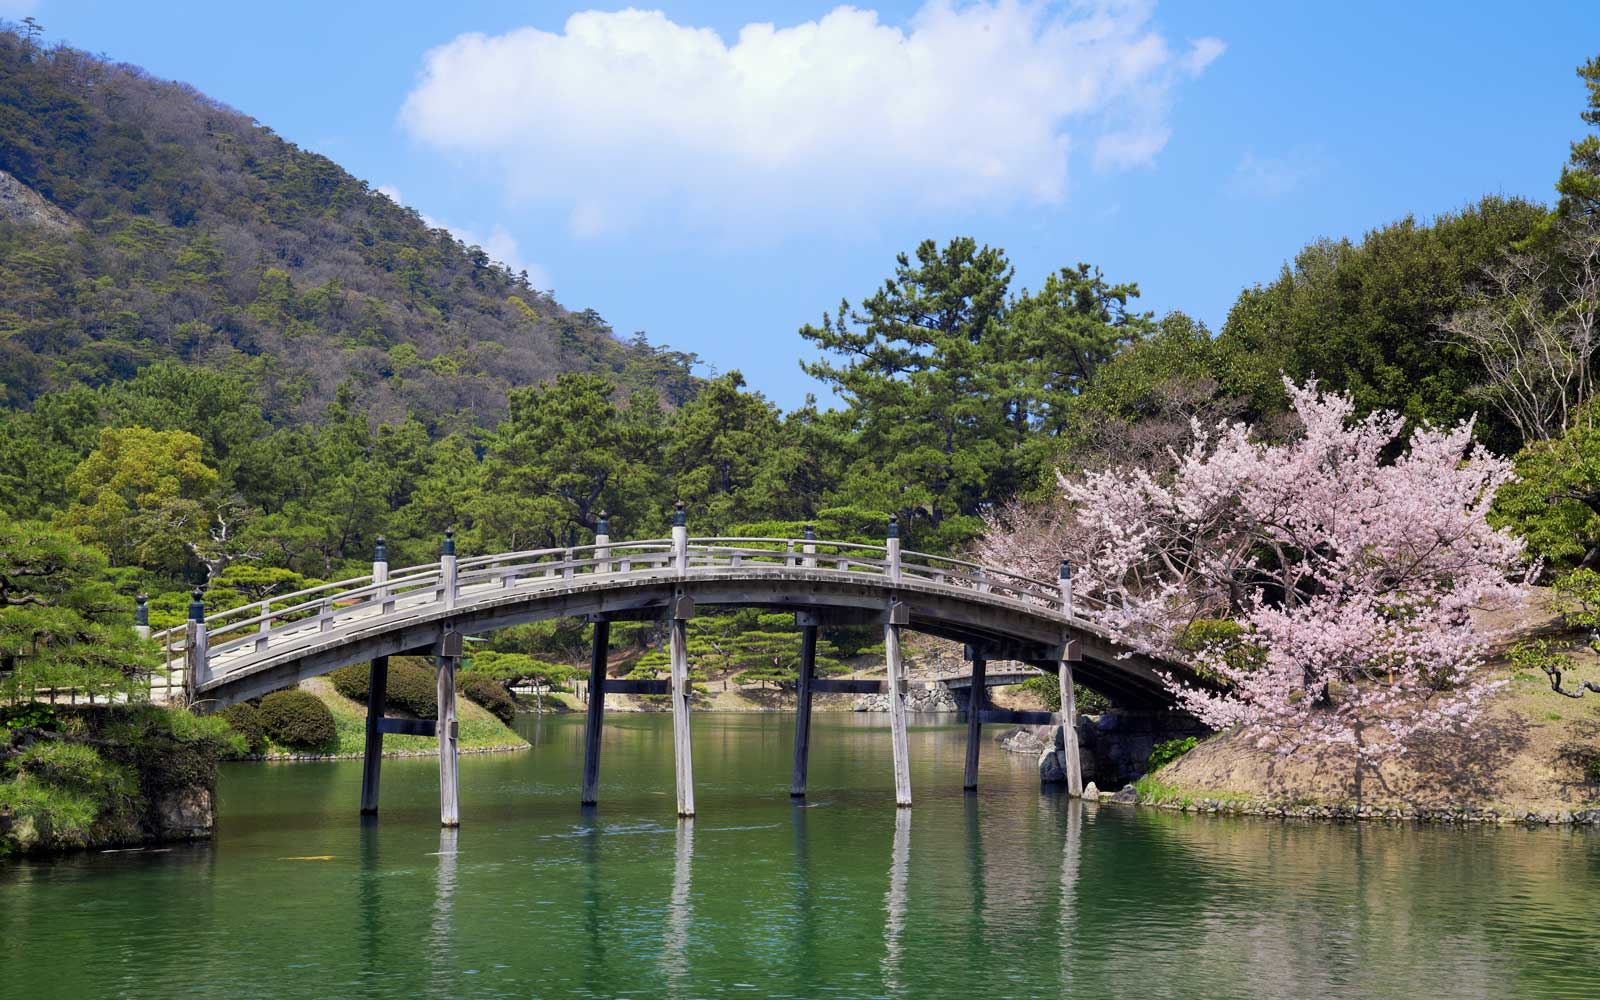 The Essential 5-day Itinerary Around Japan's Seto Inland Sea, According to T+L Travel Advisory Board Member Mark Lakin